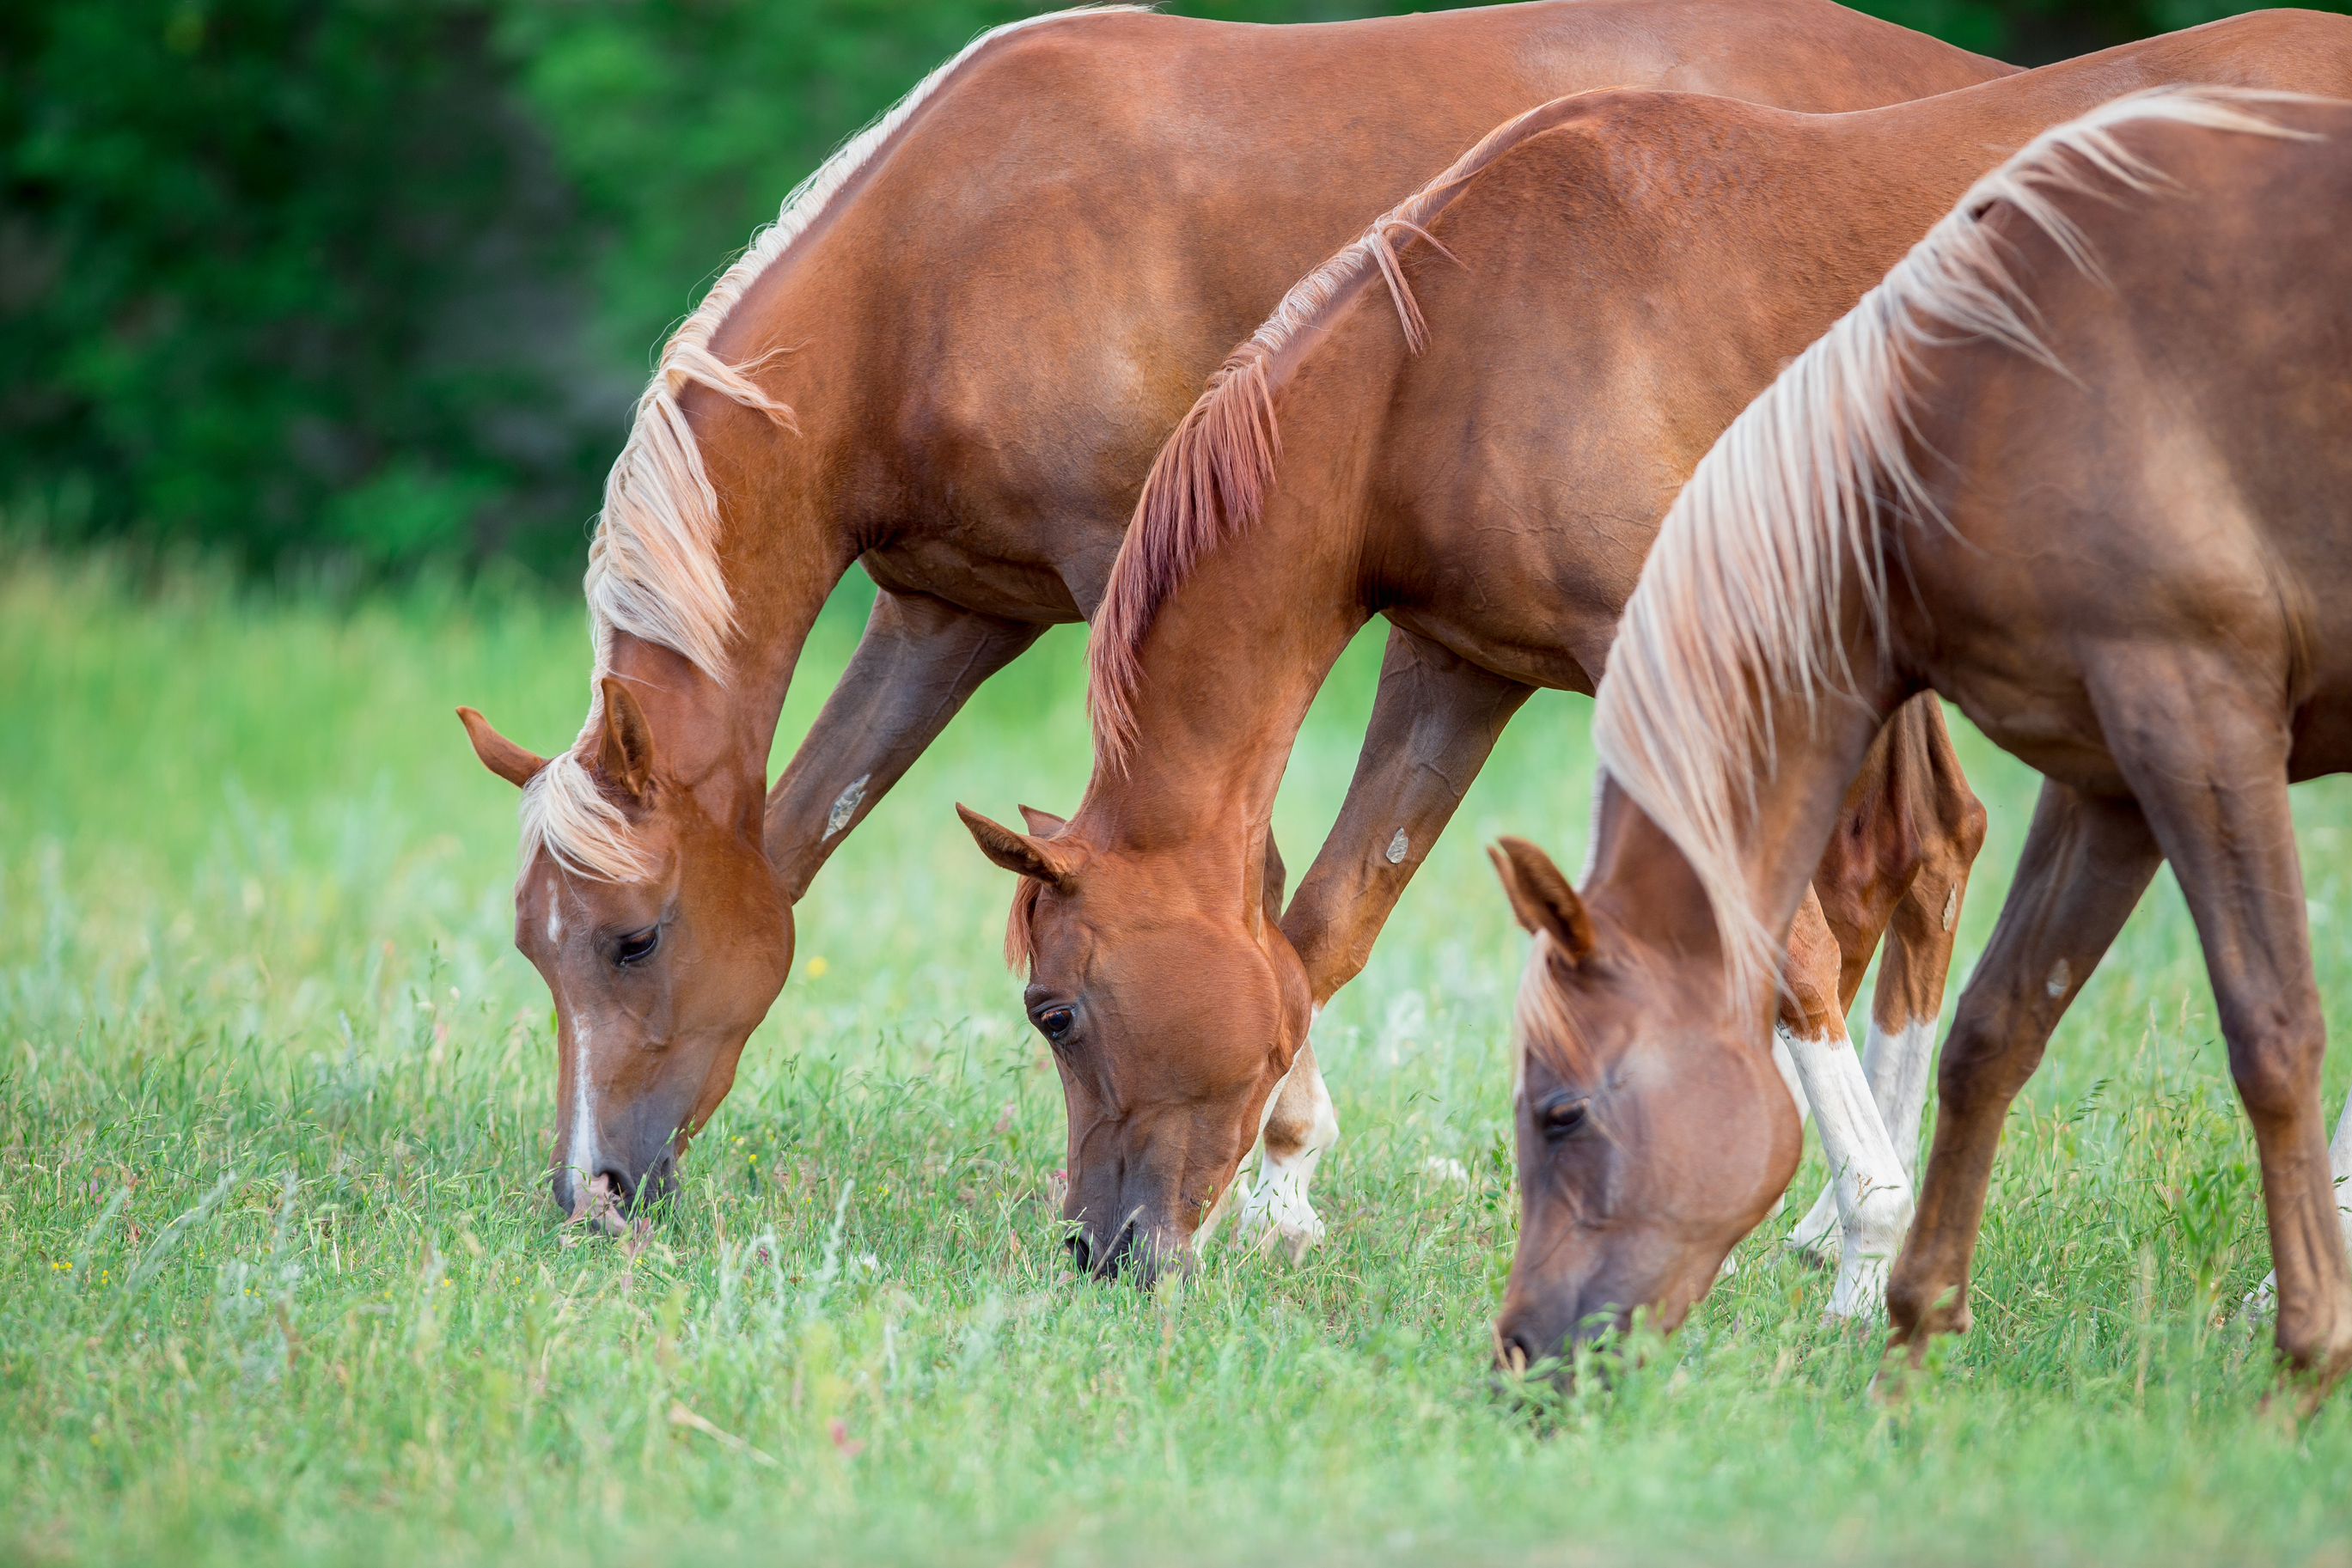 De-worming Your Horse: Using Chemicals and Herbs for Management and